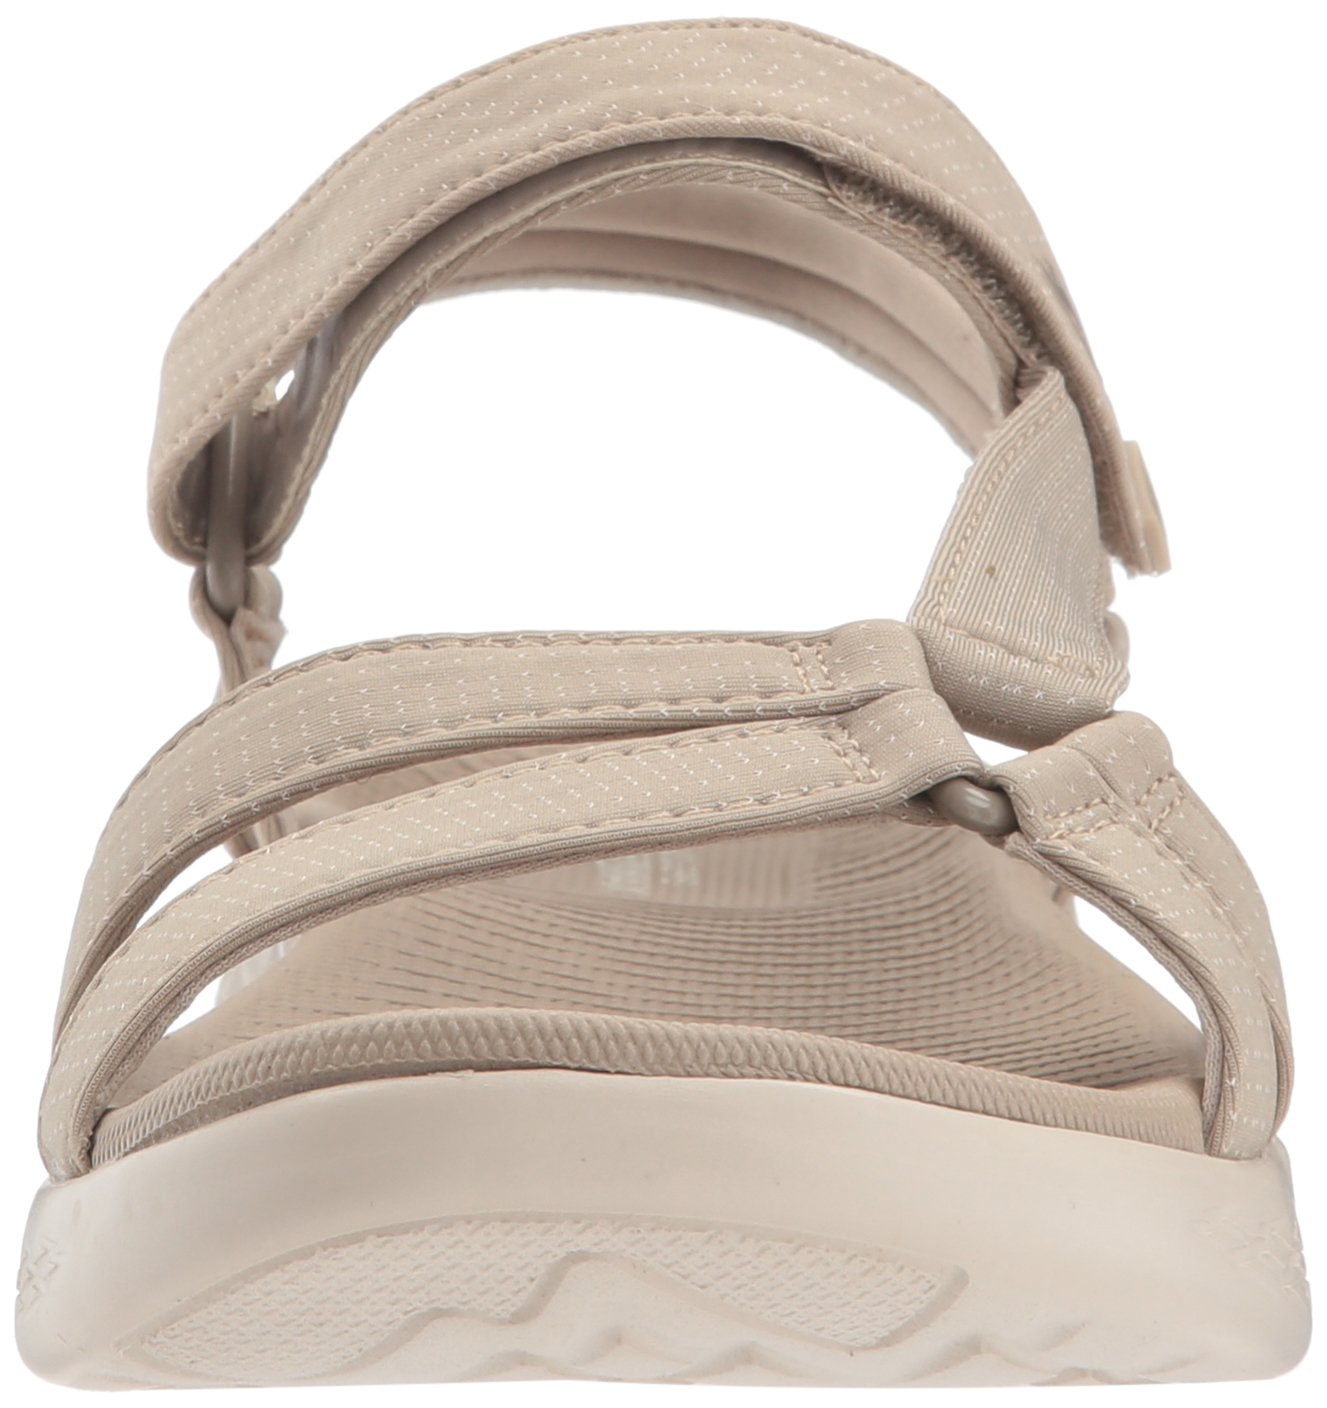 Skechers Performance Women's on-The-Go 600-Brilliancy Wide Sport Sandal,Natural,6 W US by Skechers (Image #4)